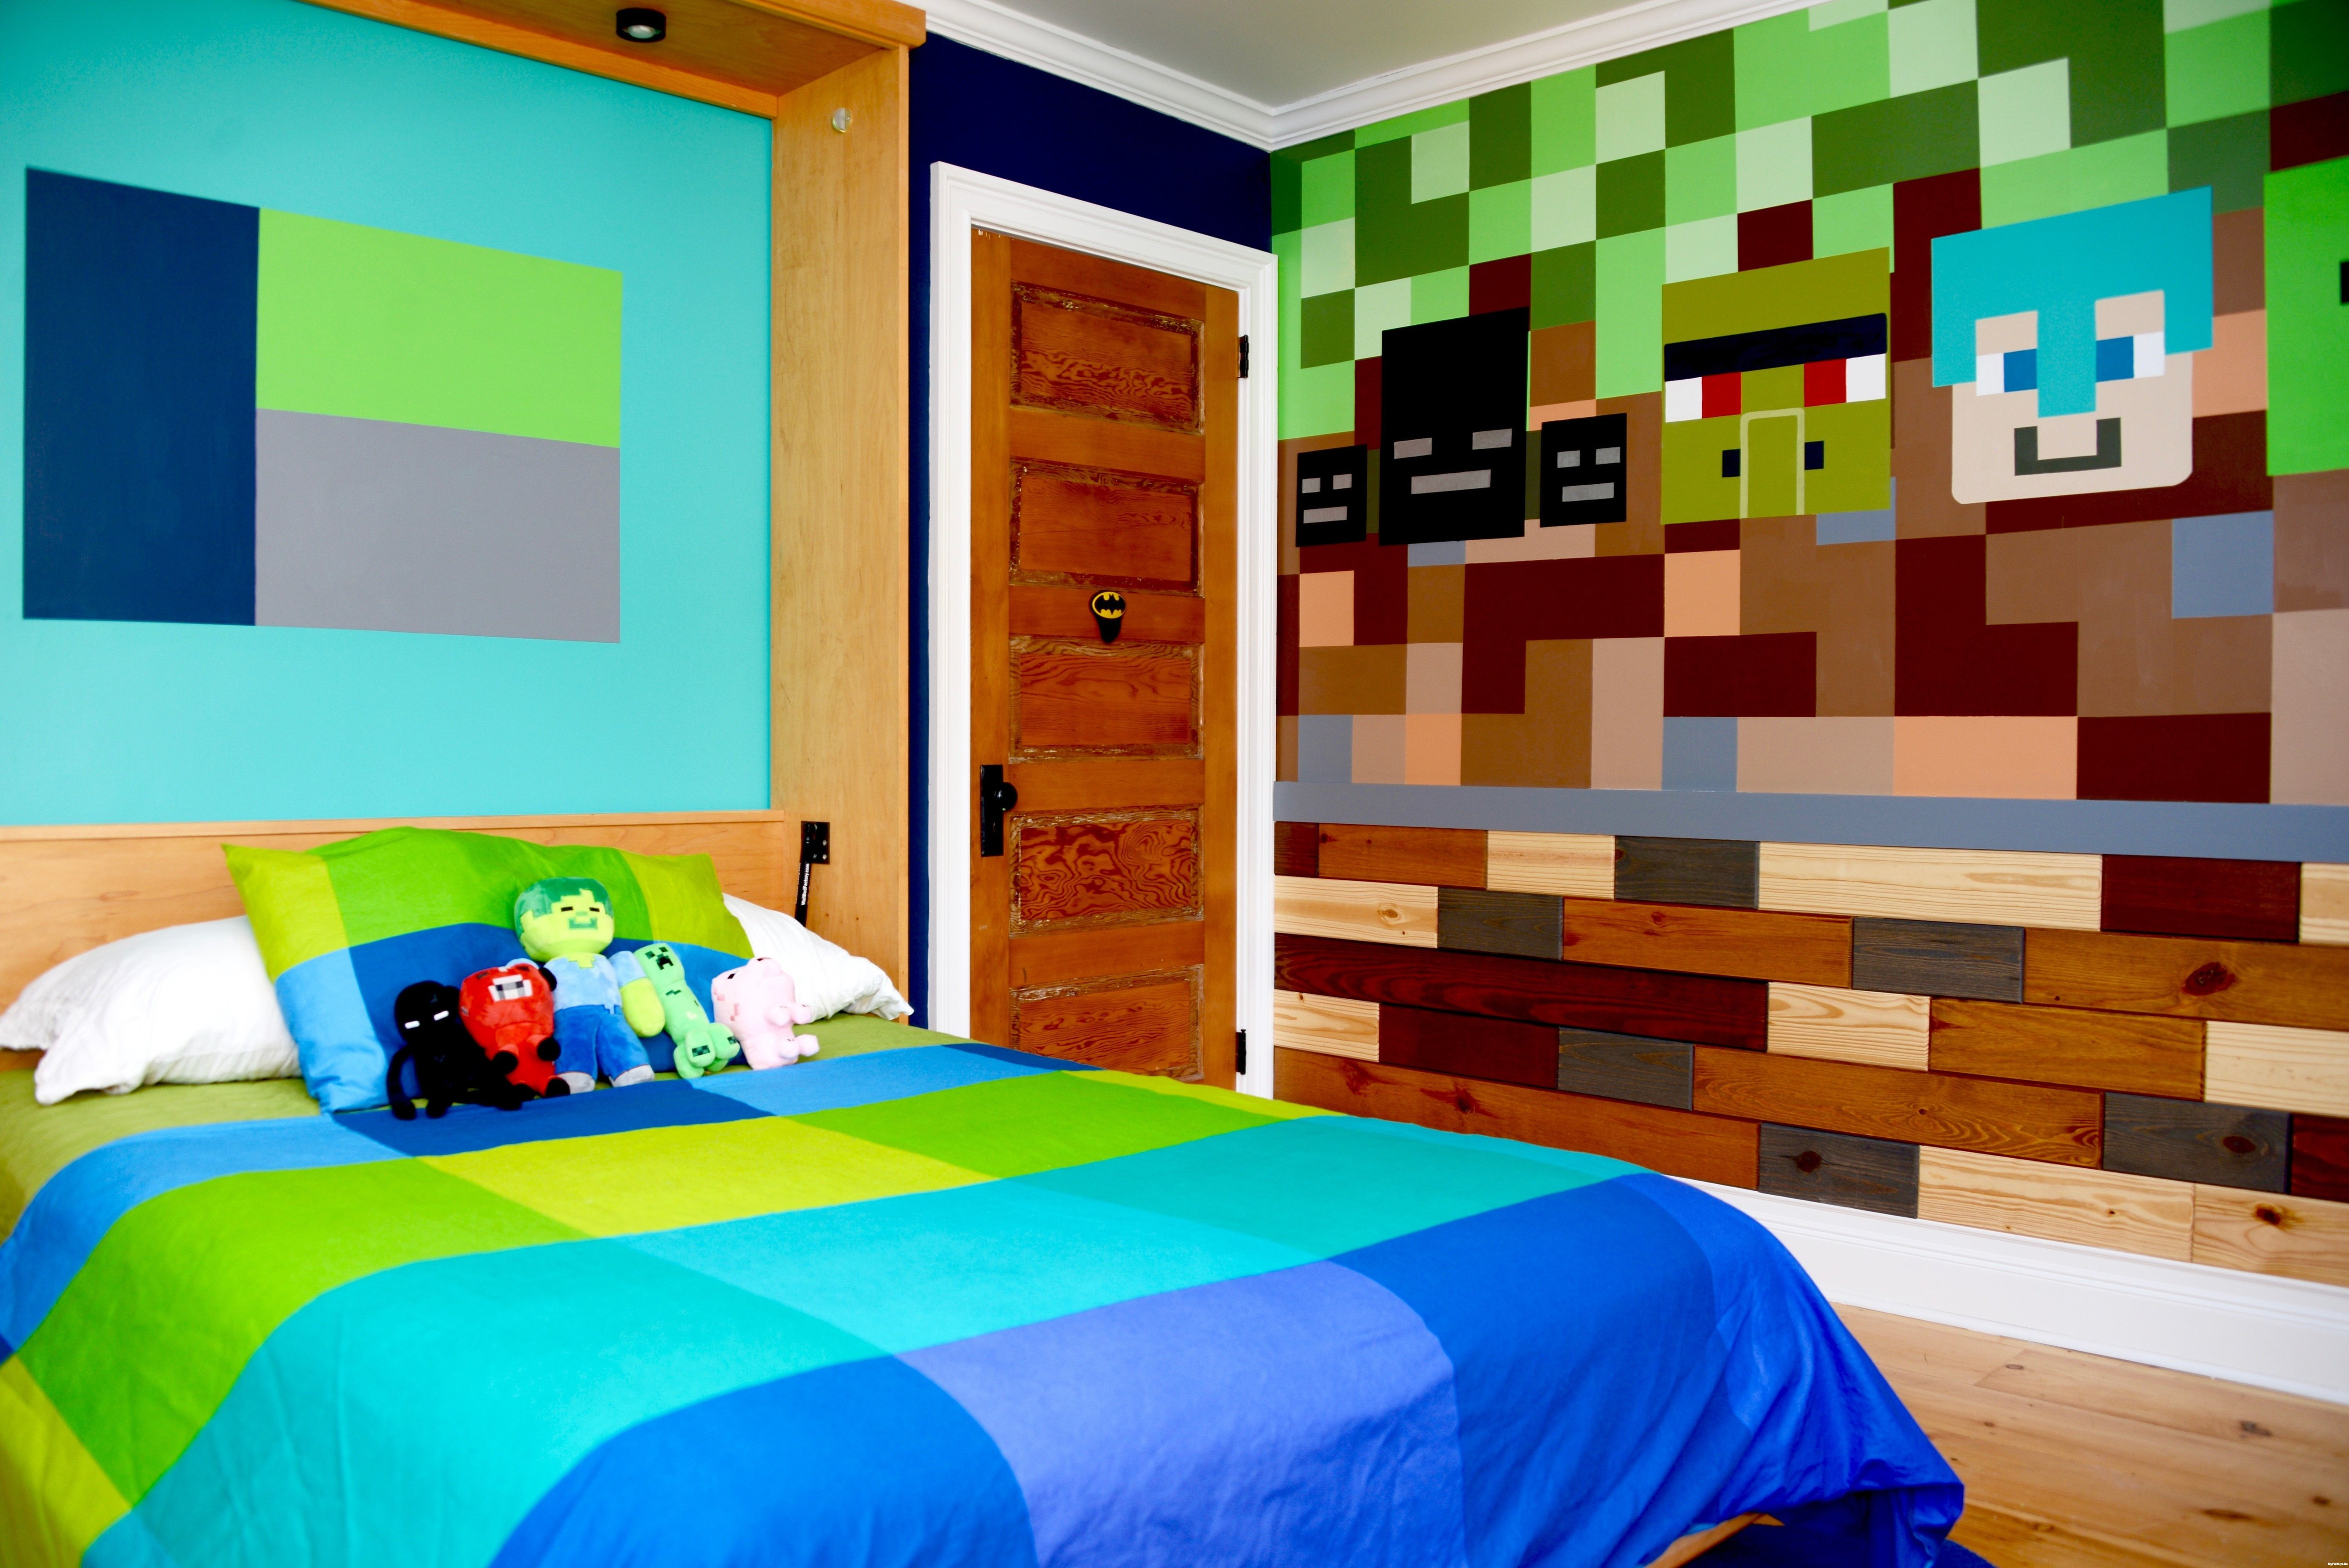 How syp brought a minecraft inspired bedroom to life for Bedroom designs minecraft